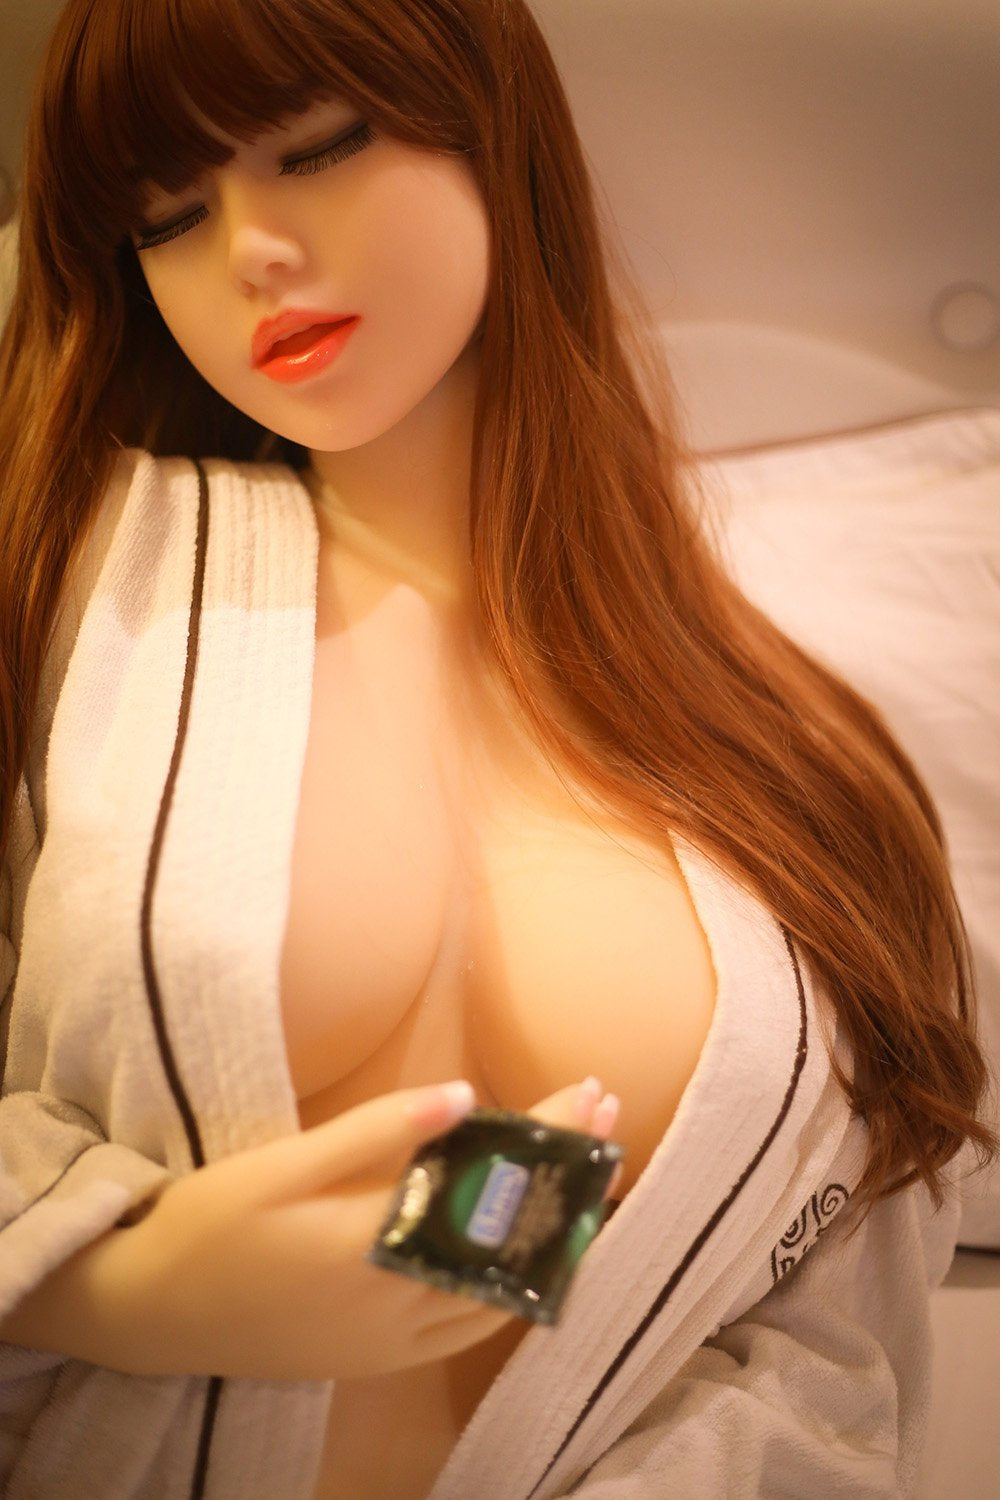 patsy 158cm brown hair medium tits skinny tpe wm asian sex doll(8)